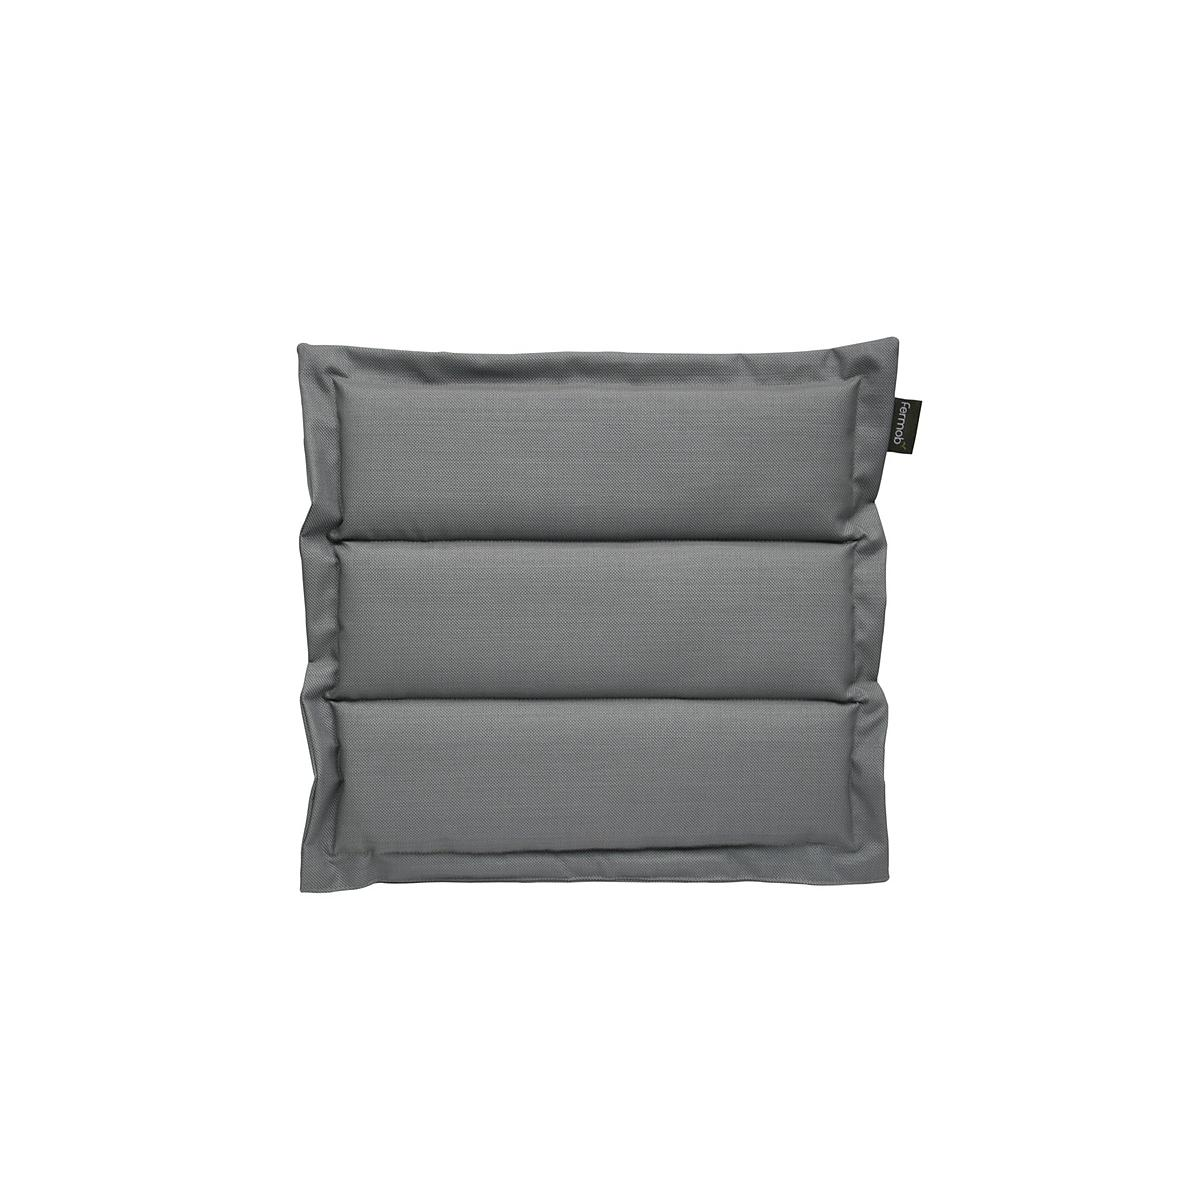 LUXEMBOURG  by Fermob Coussin chaise et bridge gris